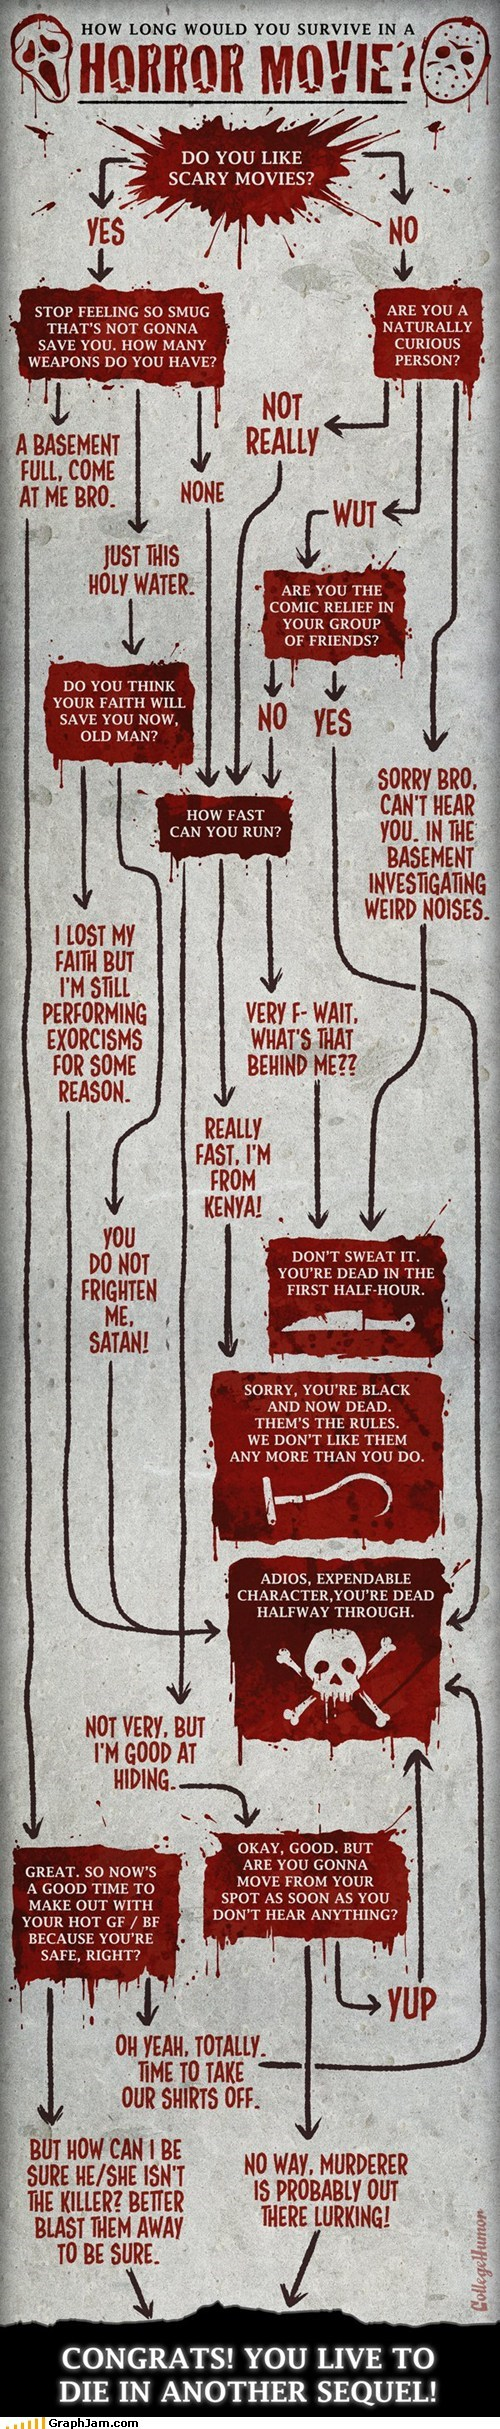 best of week flow chart horror movie murder slasher survival - 6198309120